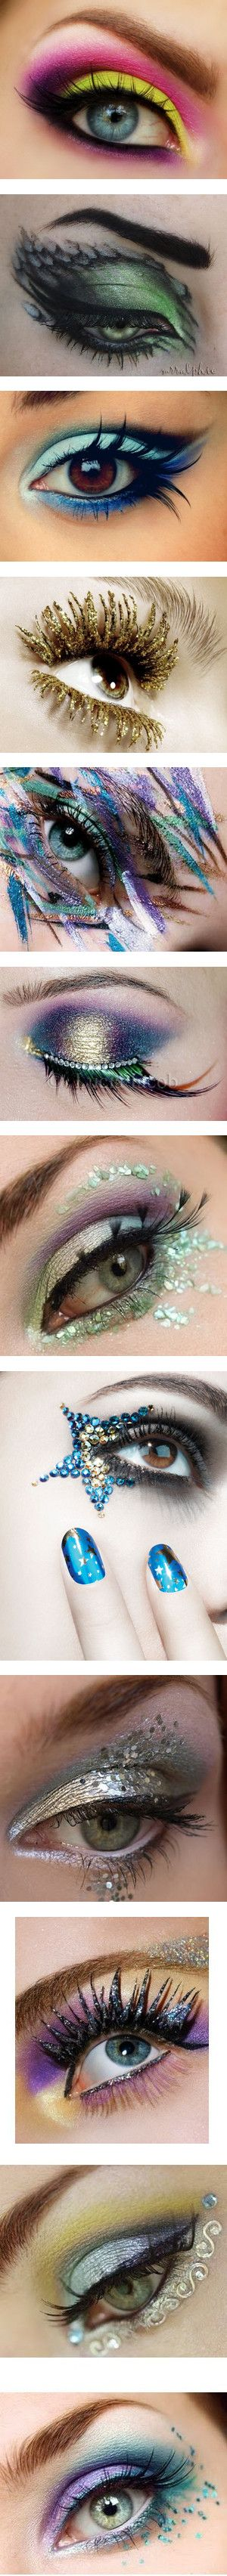 Capitol Make-up by shanayaswonderland on Polyvore featuring beauty products, makeup, eye makeup, eyeshadow, eyes, beauty, pictures, backgrounds, people and maquillaje